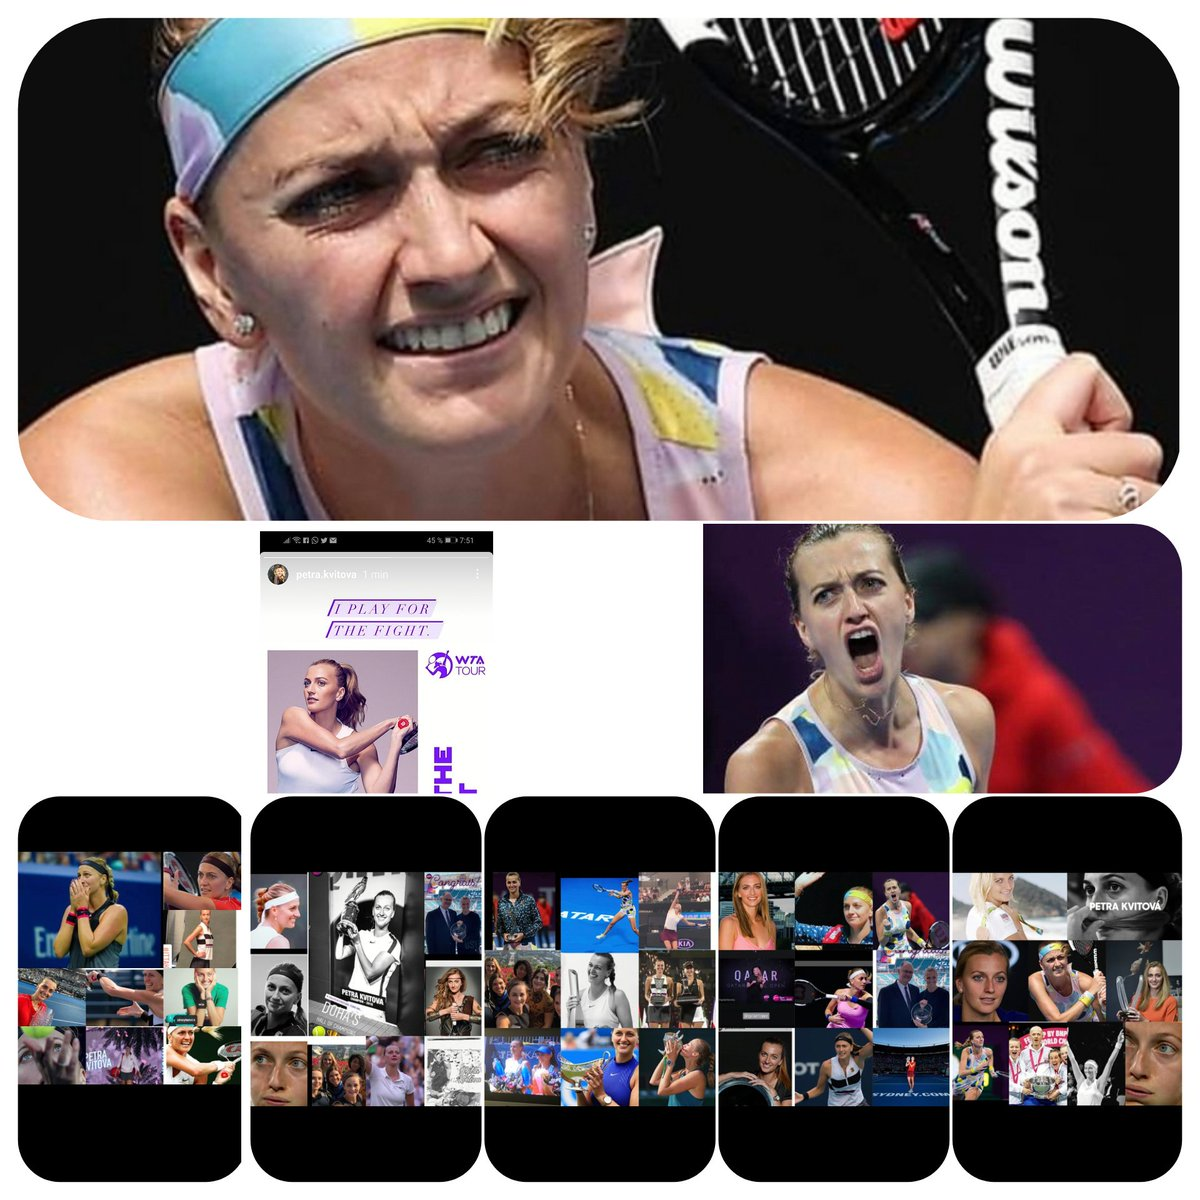 @Petra_Kvitova @WTA for something bigger than you, and thanks for having you still here giving your best effort, it is wonderful that you continue to fight game by game, and thank you for all your love and dedication for this beautiful sport and all the best always for the new era of WTA, Petra Kv💓 https://t.co/VybxxIAAPQ